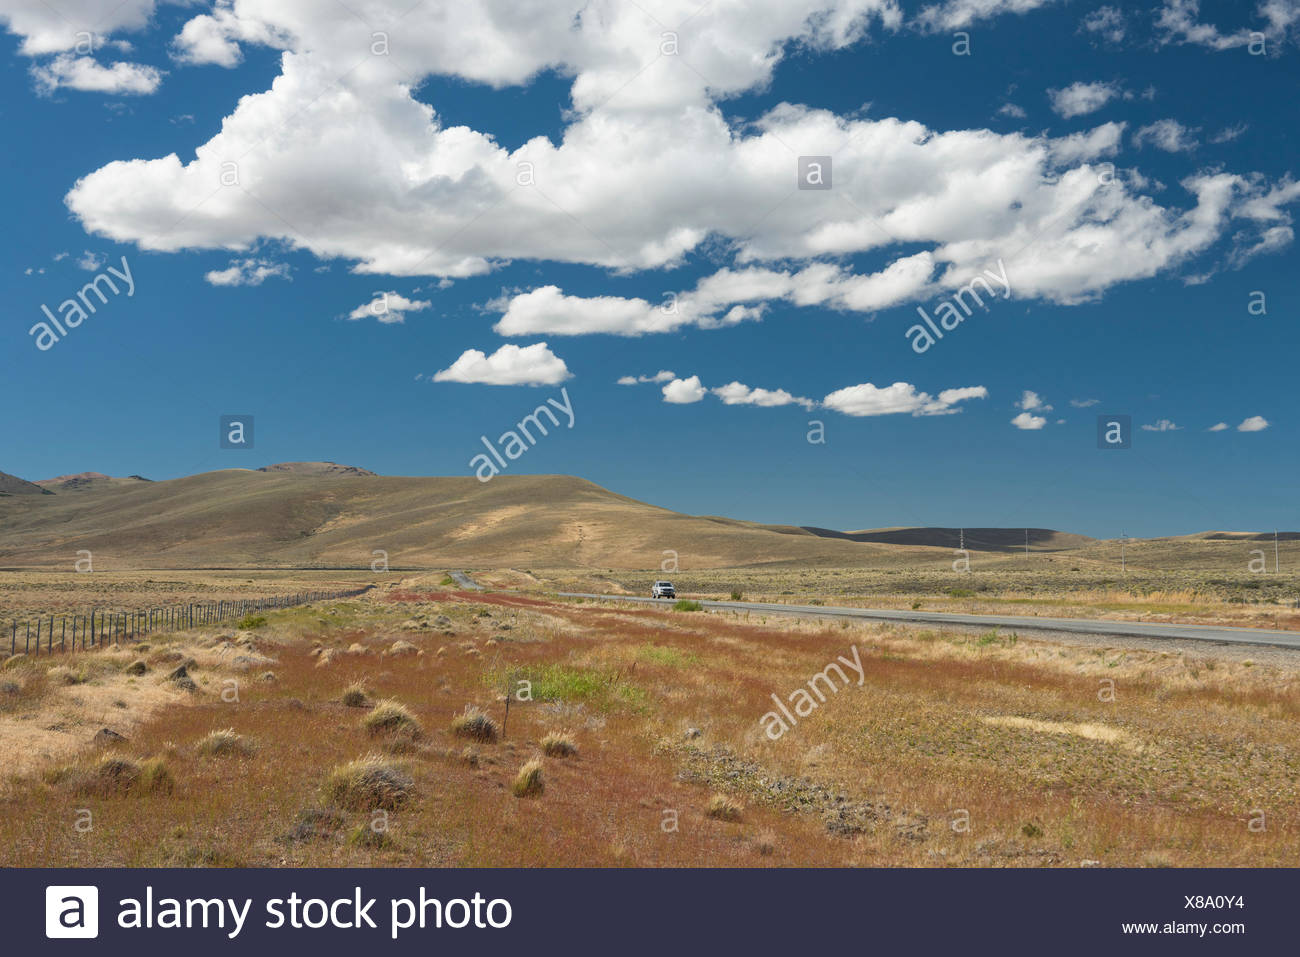 South America,Argentina,Patagonia,Chubut,highway,Ruta 40,highway - Stock Image